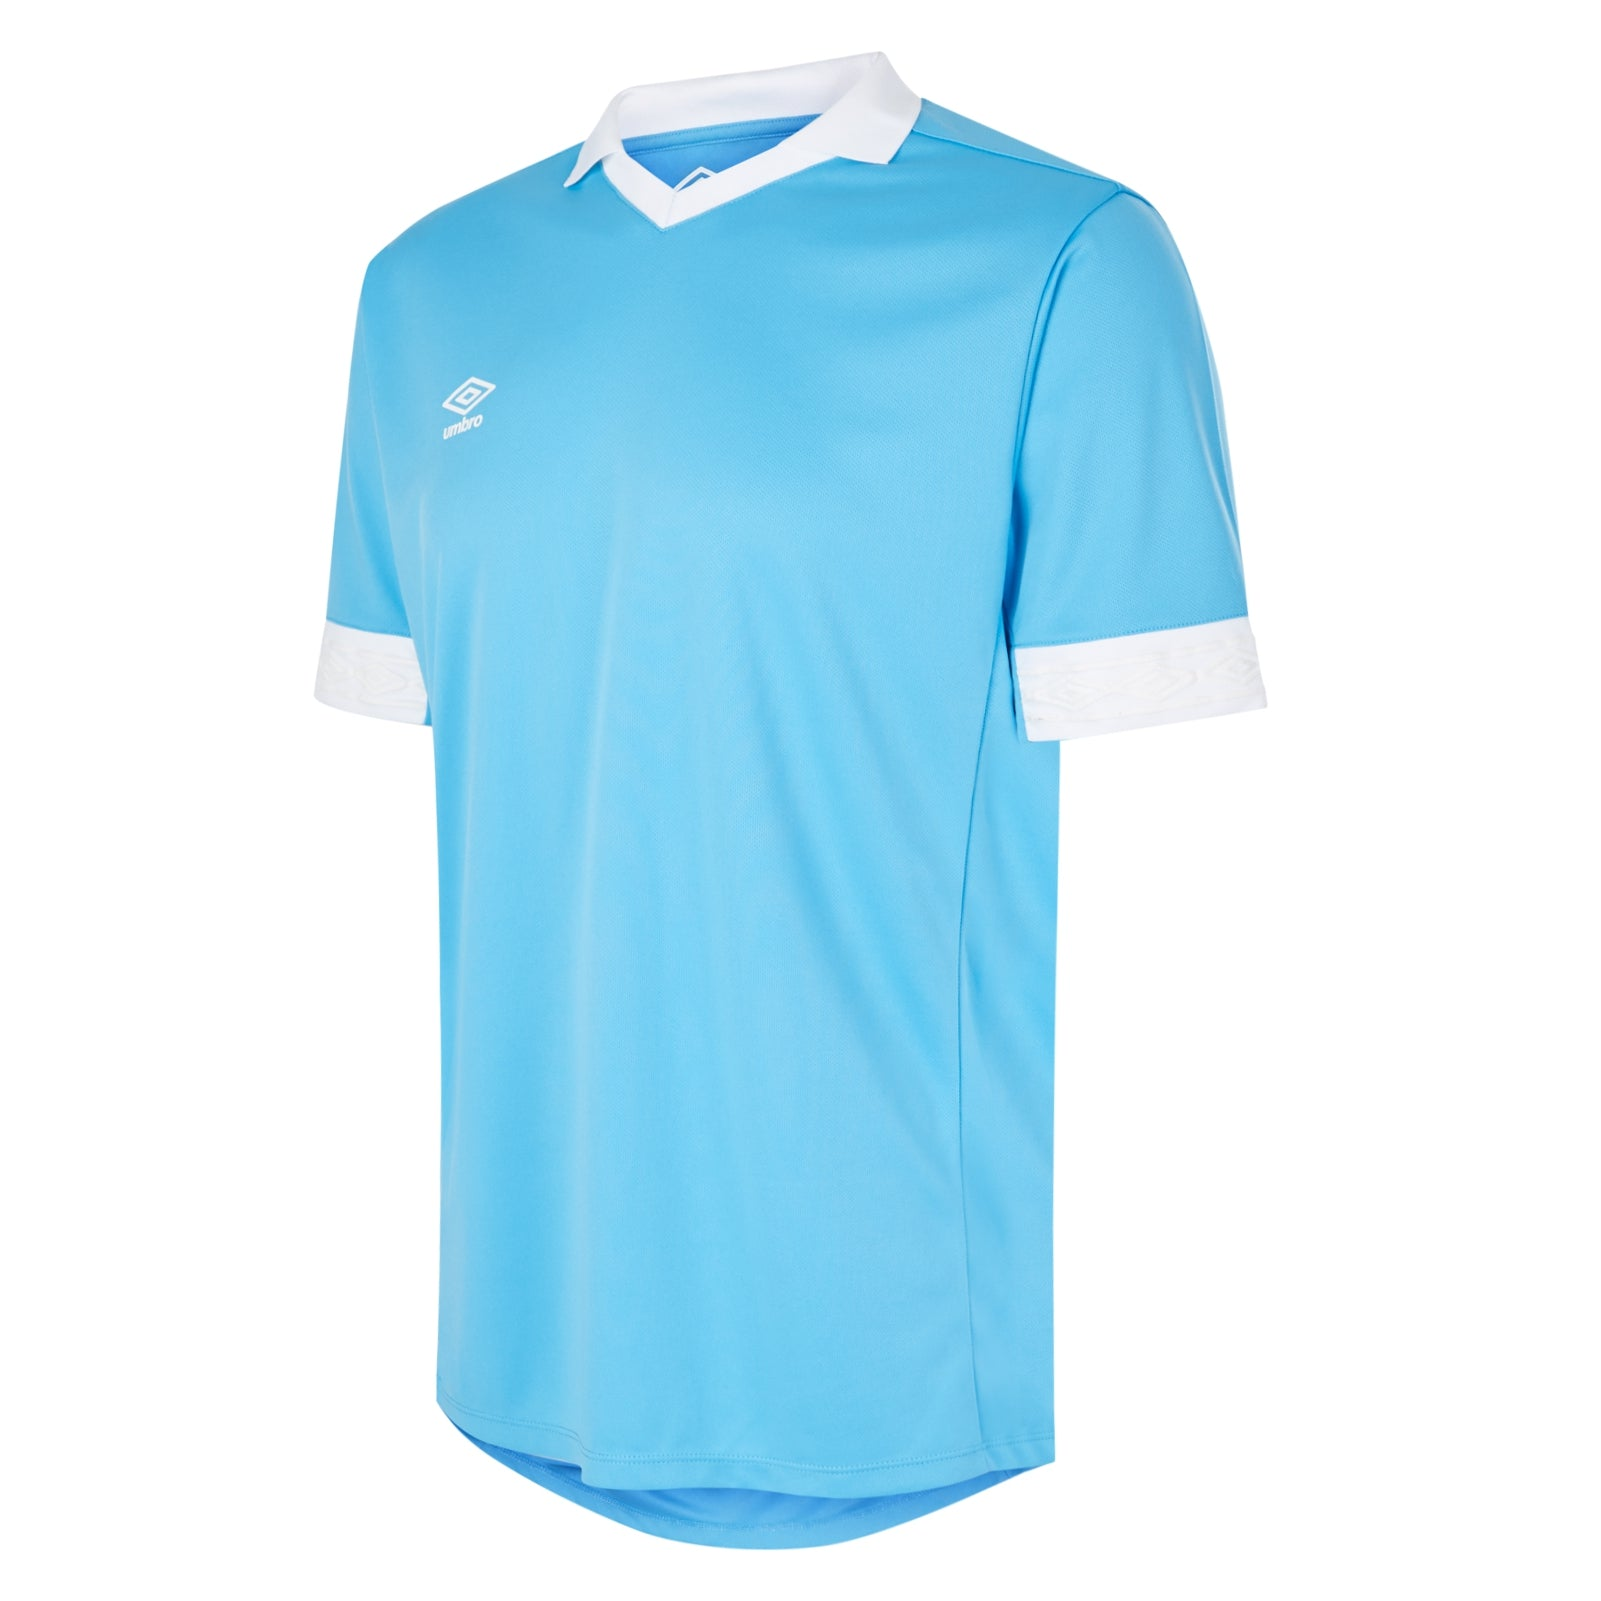 Umbro Tempest jersey short sleeve in sky blue with contrast white collar and cuff